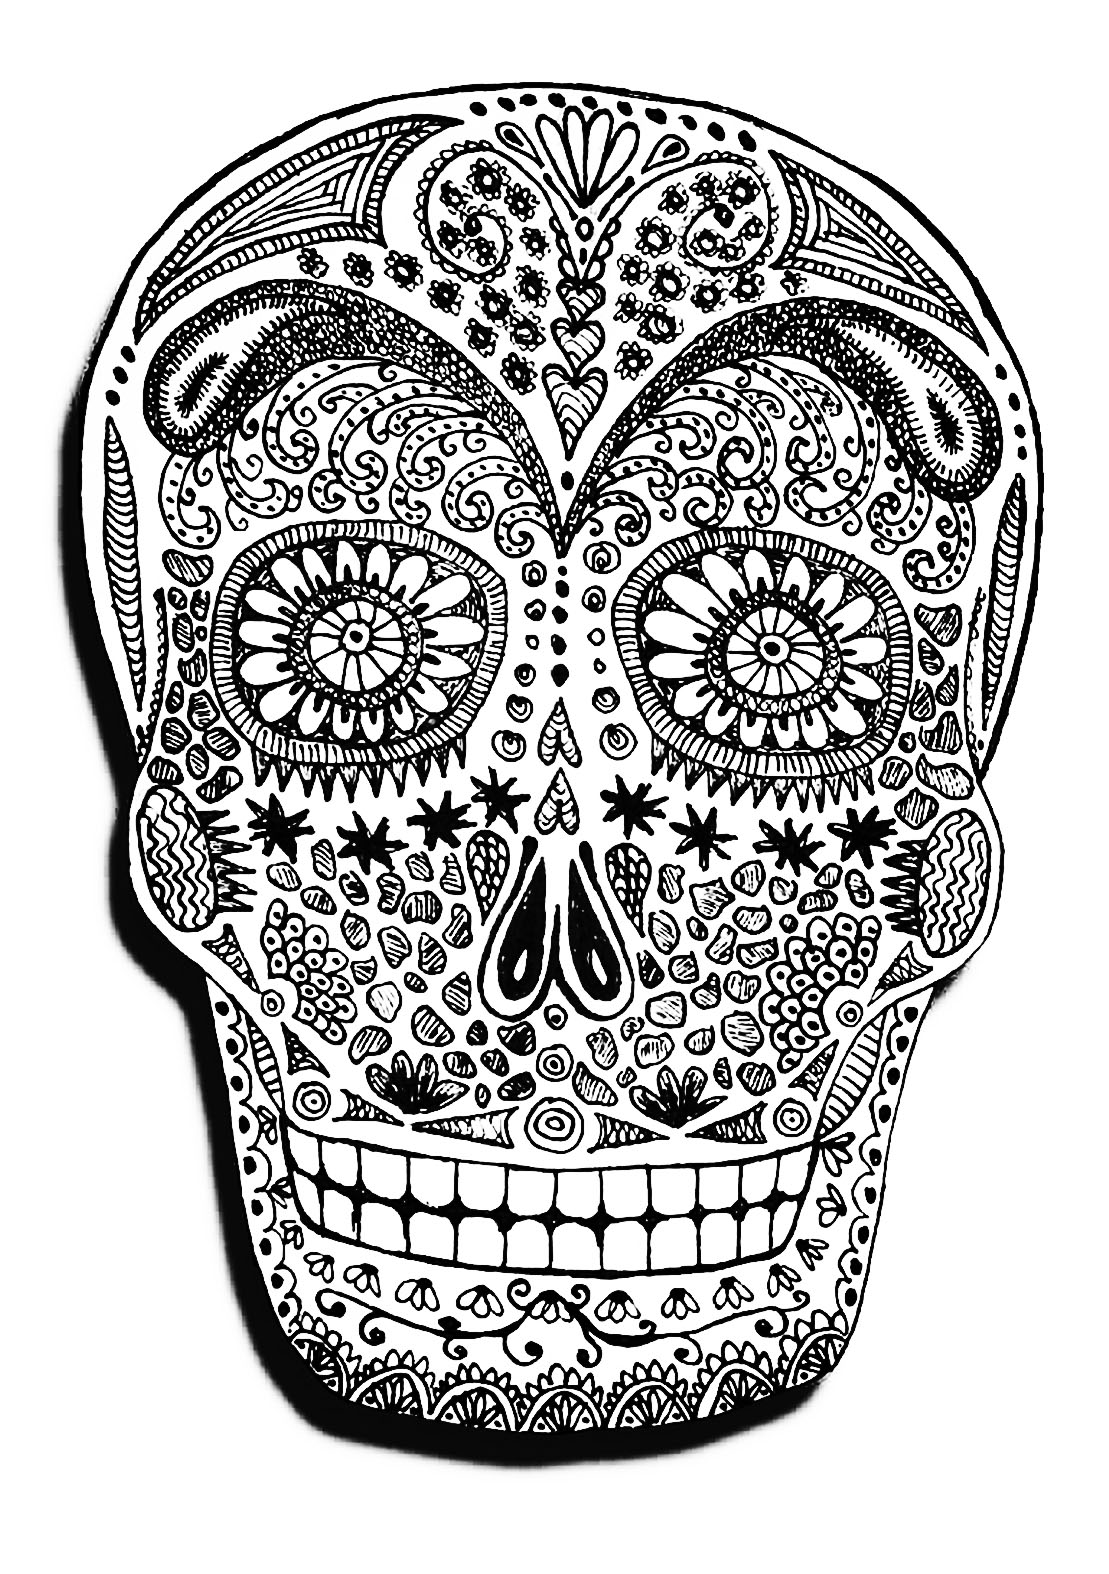 halloween skeleton head from the gallery events halloween - Halloween Skeleton Coloring Pages